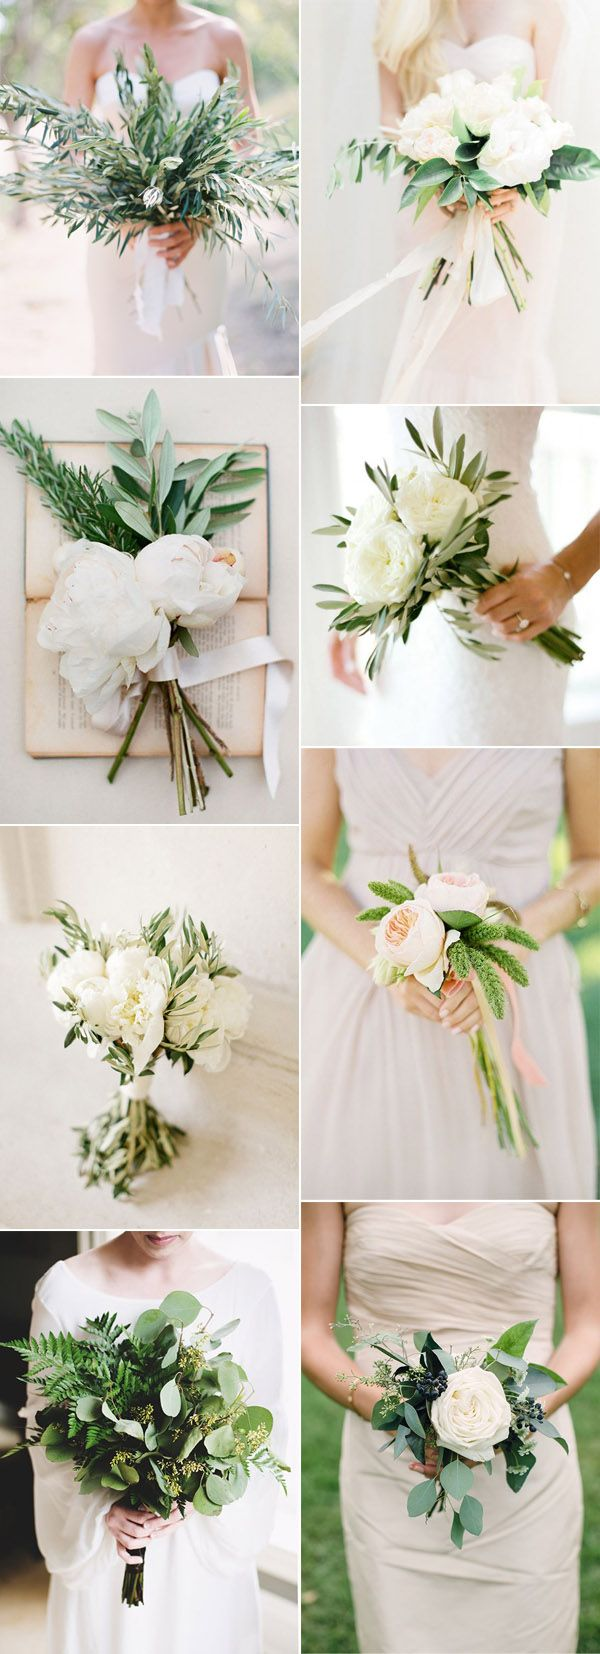 2017 & 2018 Trends-Easy Diy Organic Minimalist Wedding Ideas ...